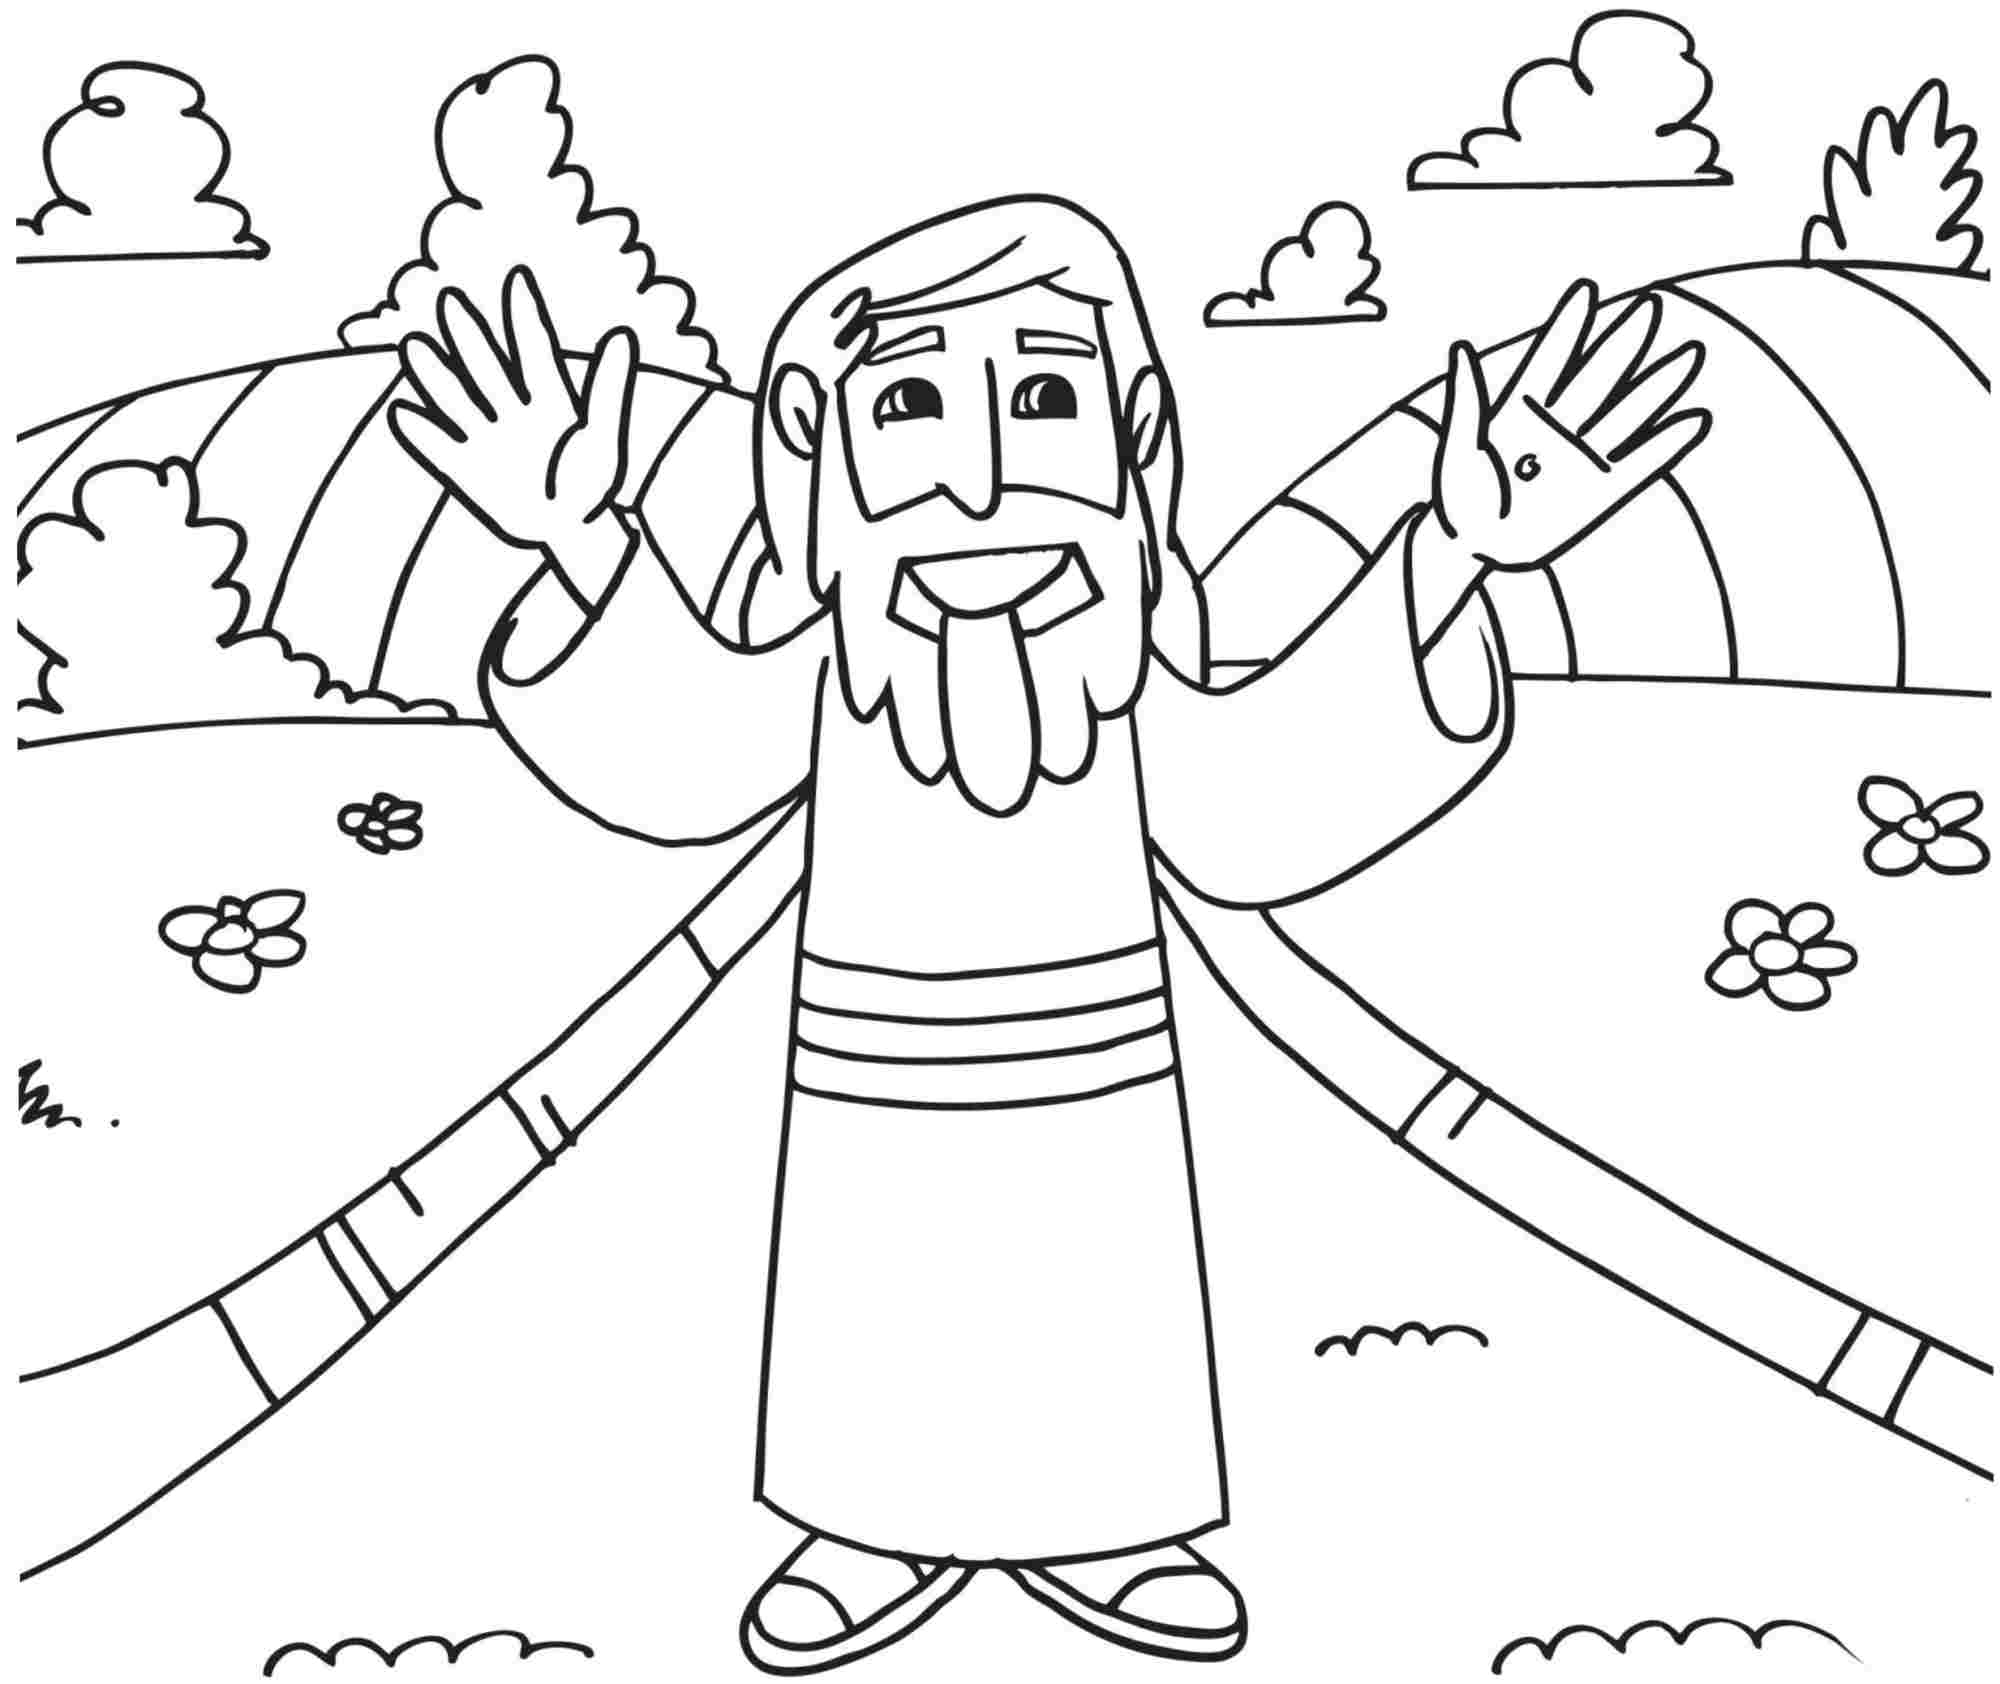 2000x1684 Best Of Religious Easter Coloring Pages